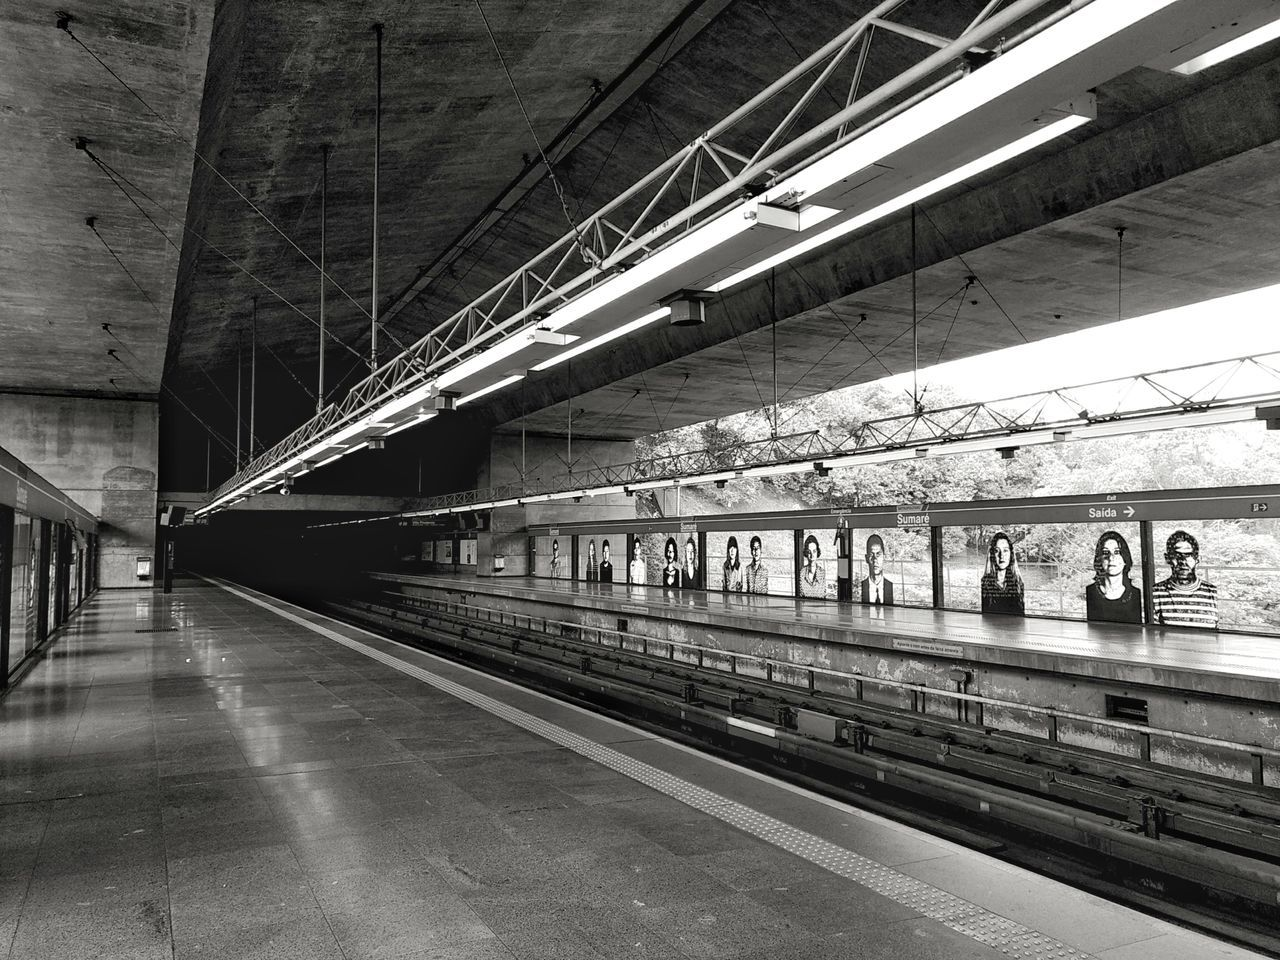 Transportation Rail Transportation Railroad Track Bridge - Man Made Structure Built Structure No People Architecture Indoors  EyeEm Best Shots Smartphonephotography Full Frame MotoZPlay Metro Station Sumare Indoor Photography Black And White Monochrome Photography City